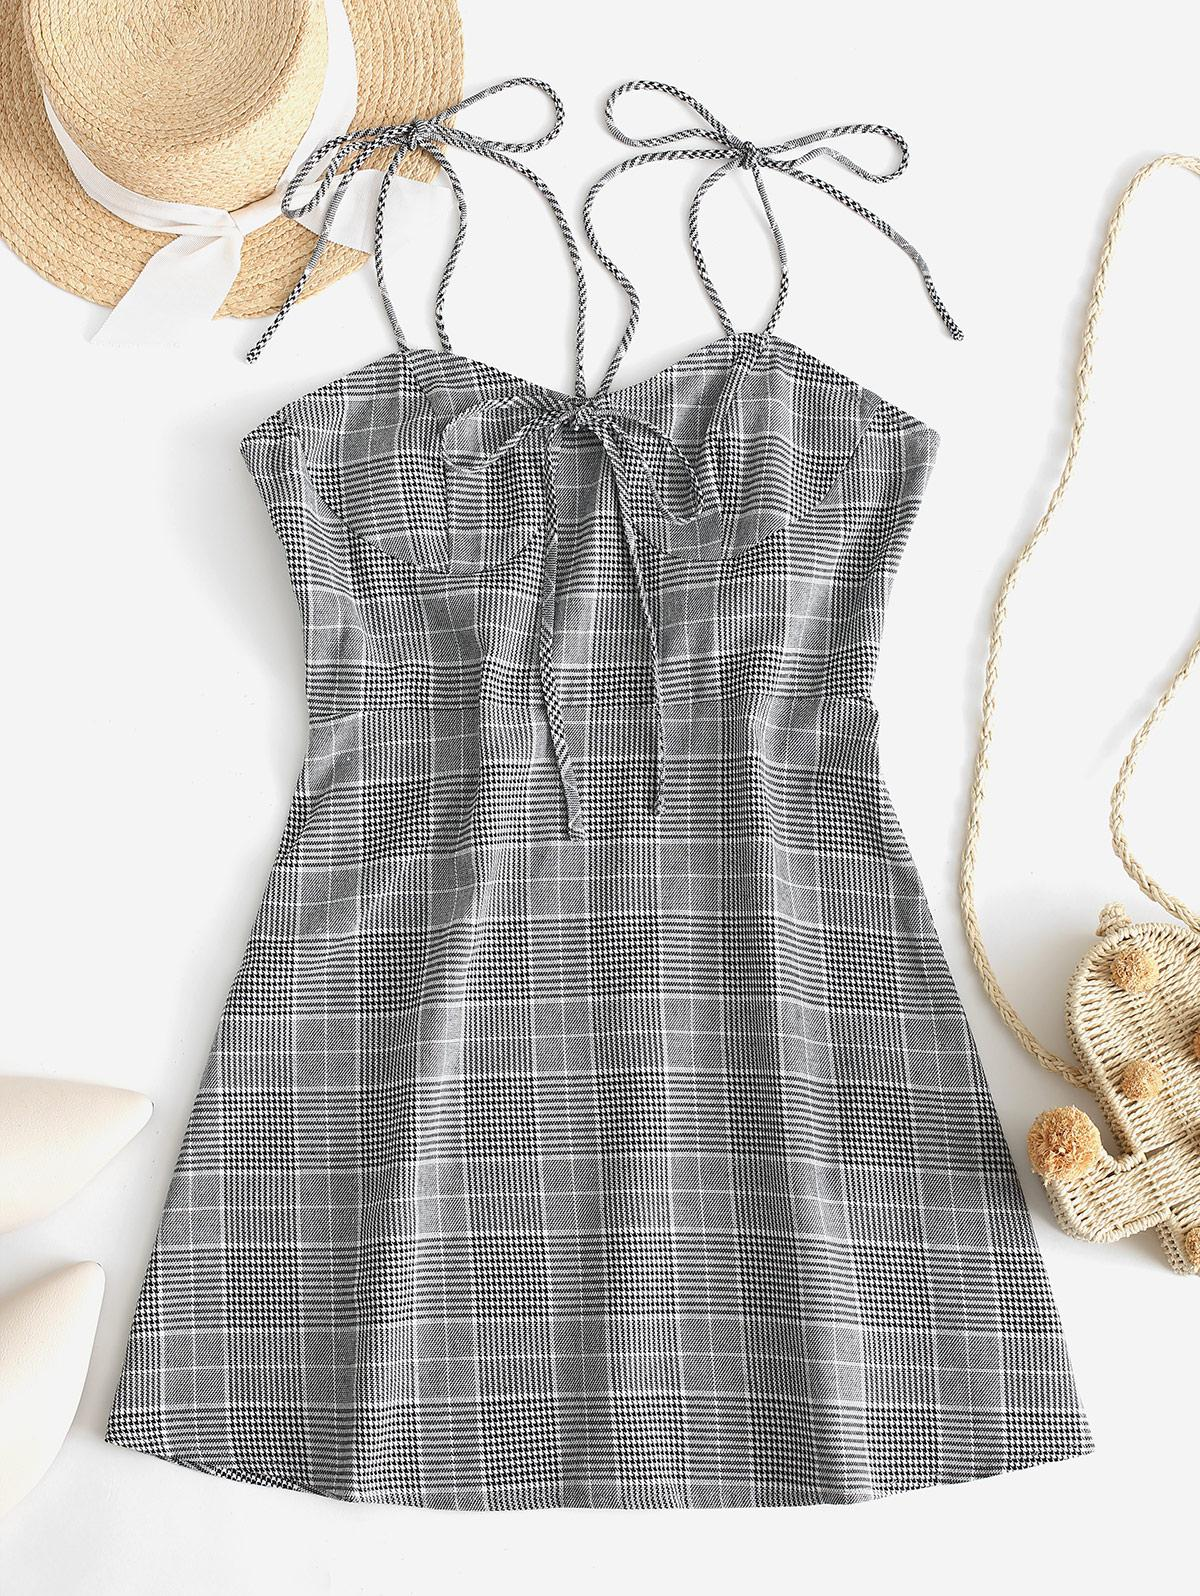 ZAFUL Glen Plaid Knotted Tie Shoulder Dress фото